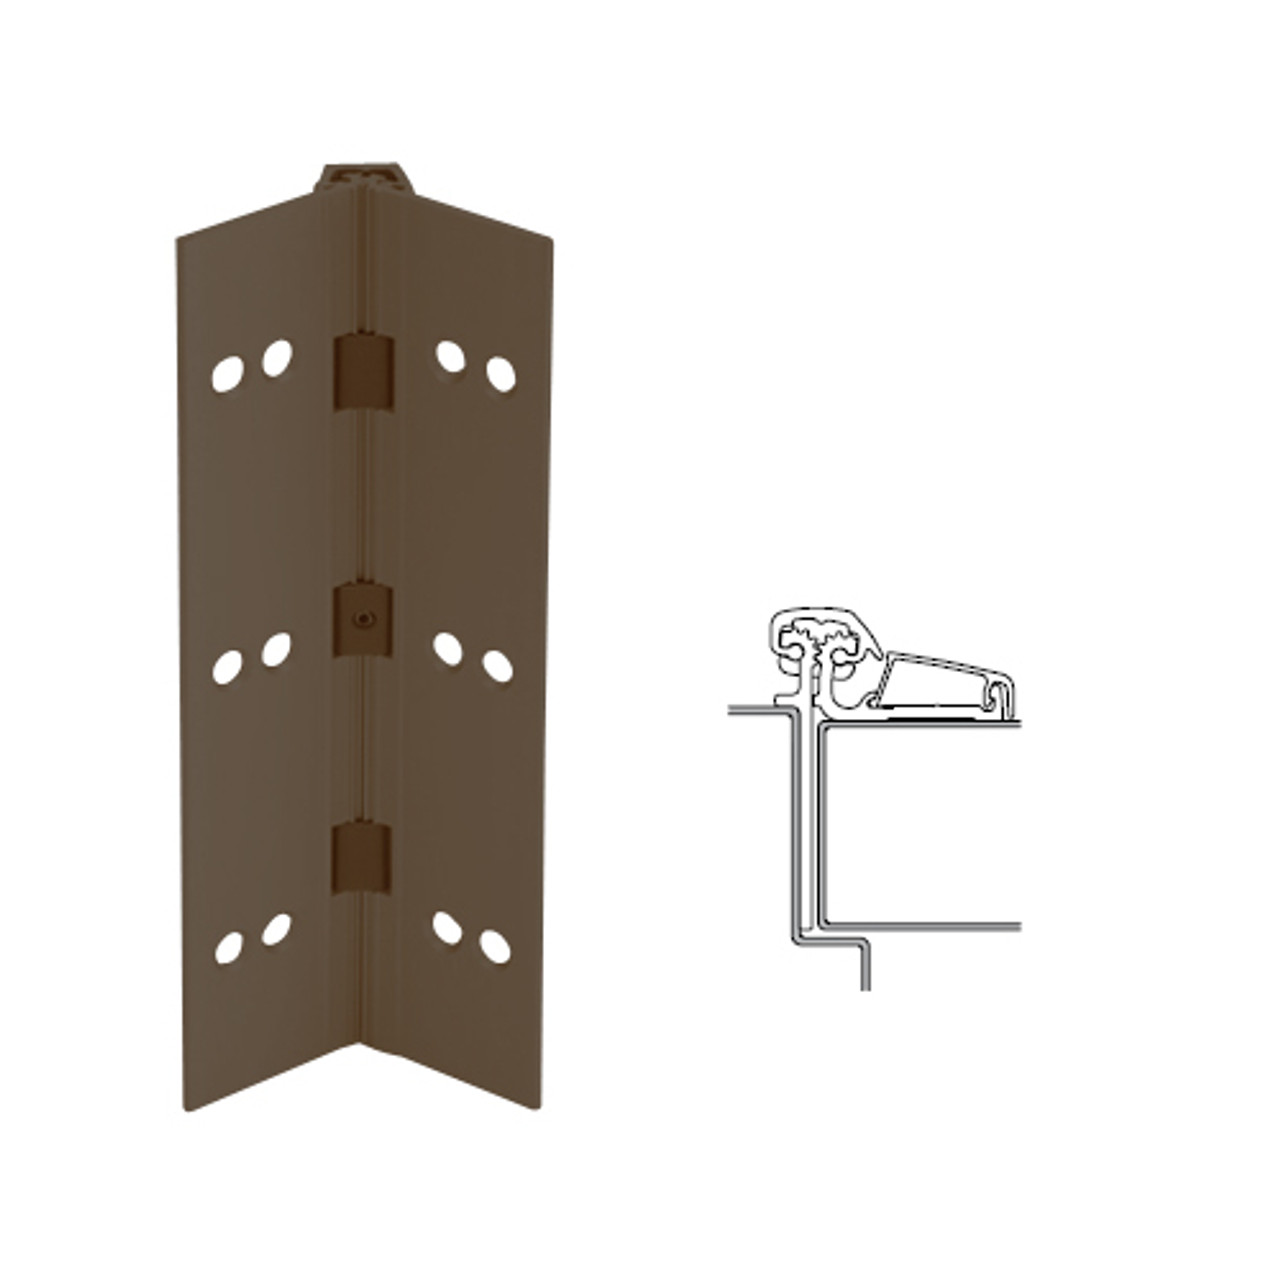 054XY-313AN-83-SECWDWD IVES Adjustable Half Surface Continuous Geared Hinges with Security Screws - Hex Pin Drive in Dark Bronze Anodized